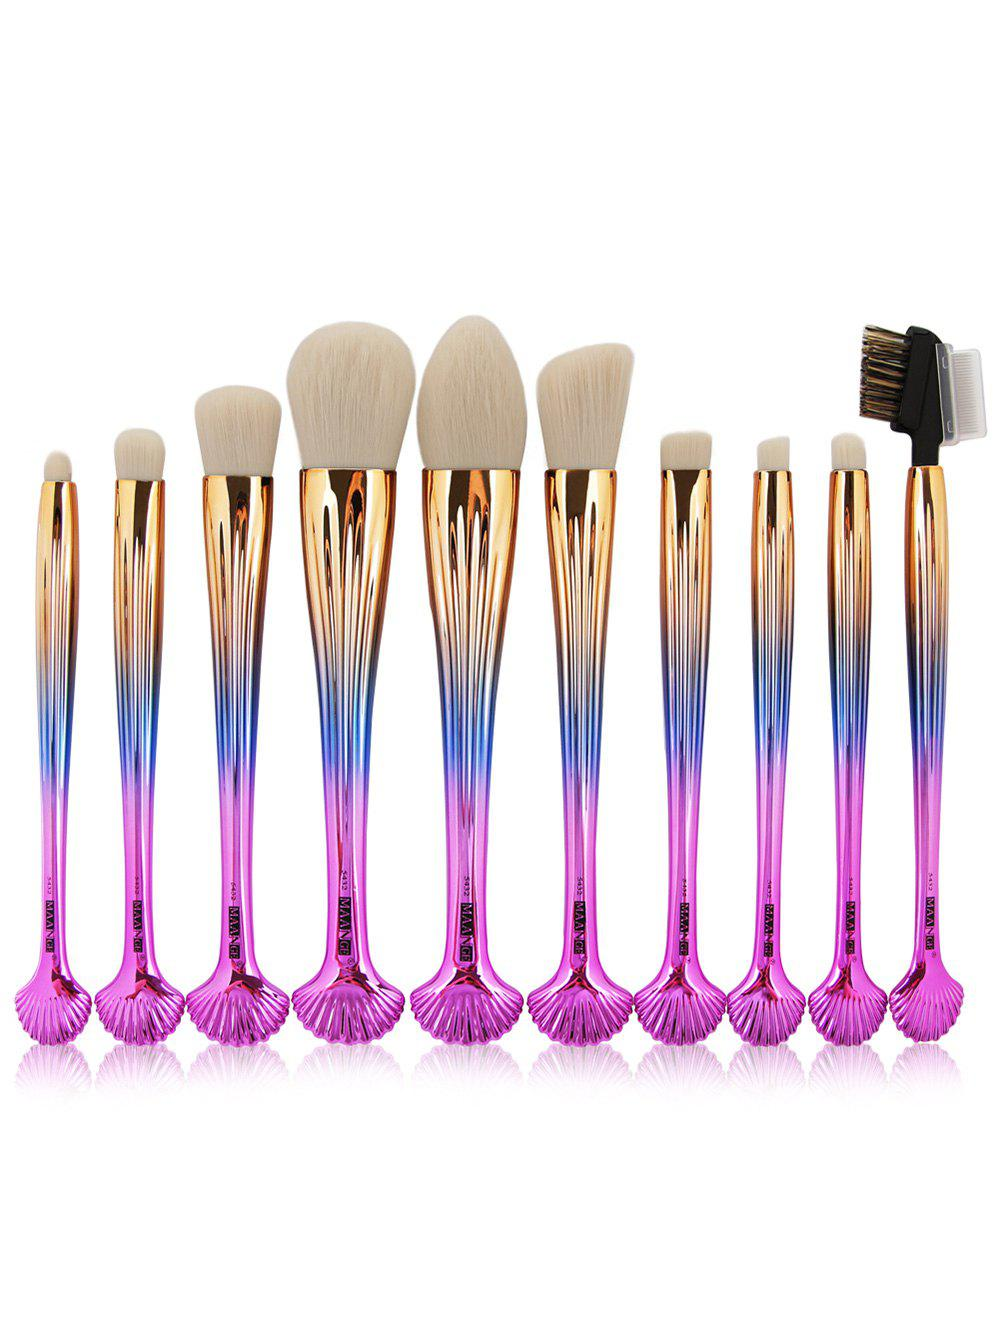 10Pcs Multifunction Gradient Color Shell Design Brushes Set - GRADUAL PINK